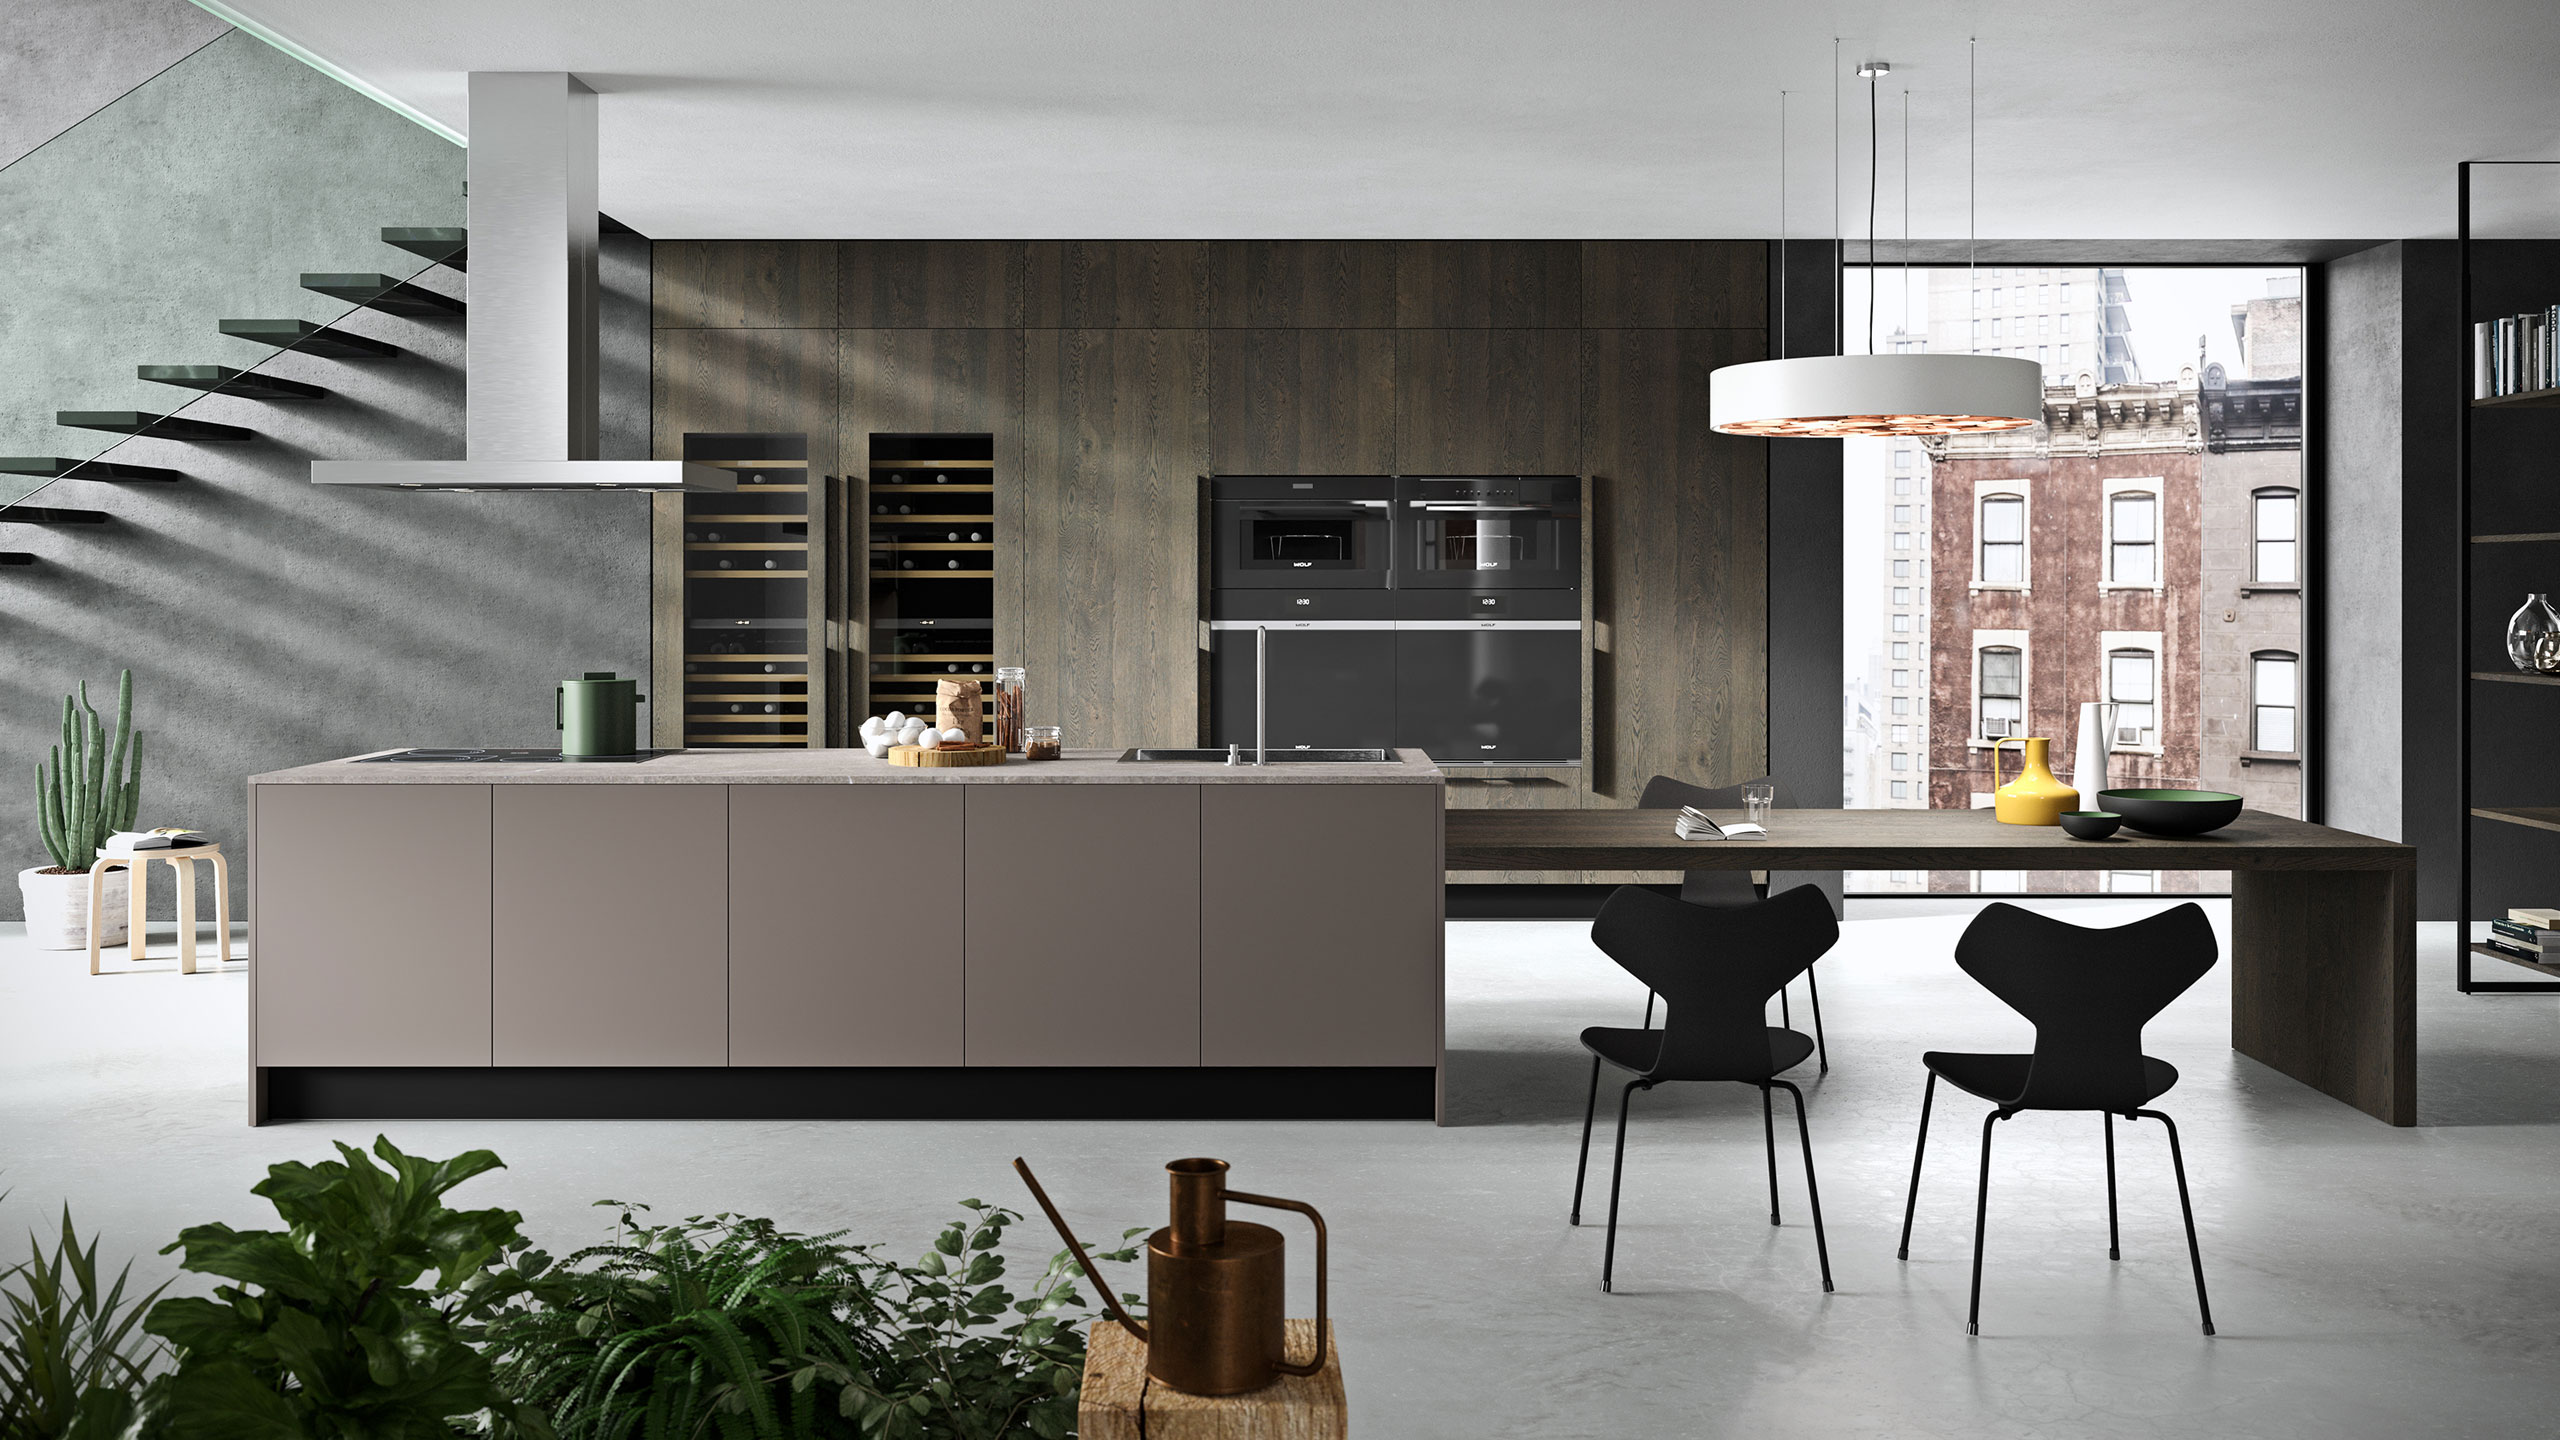 Record è Cucine | 100% made in Italy design and style kitchens